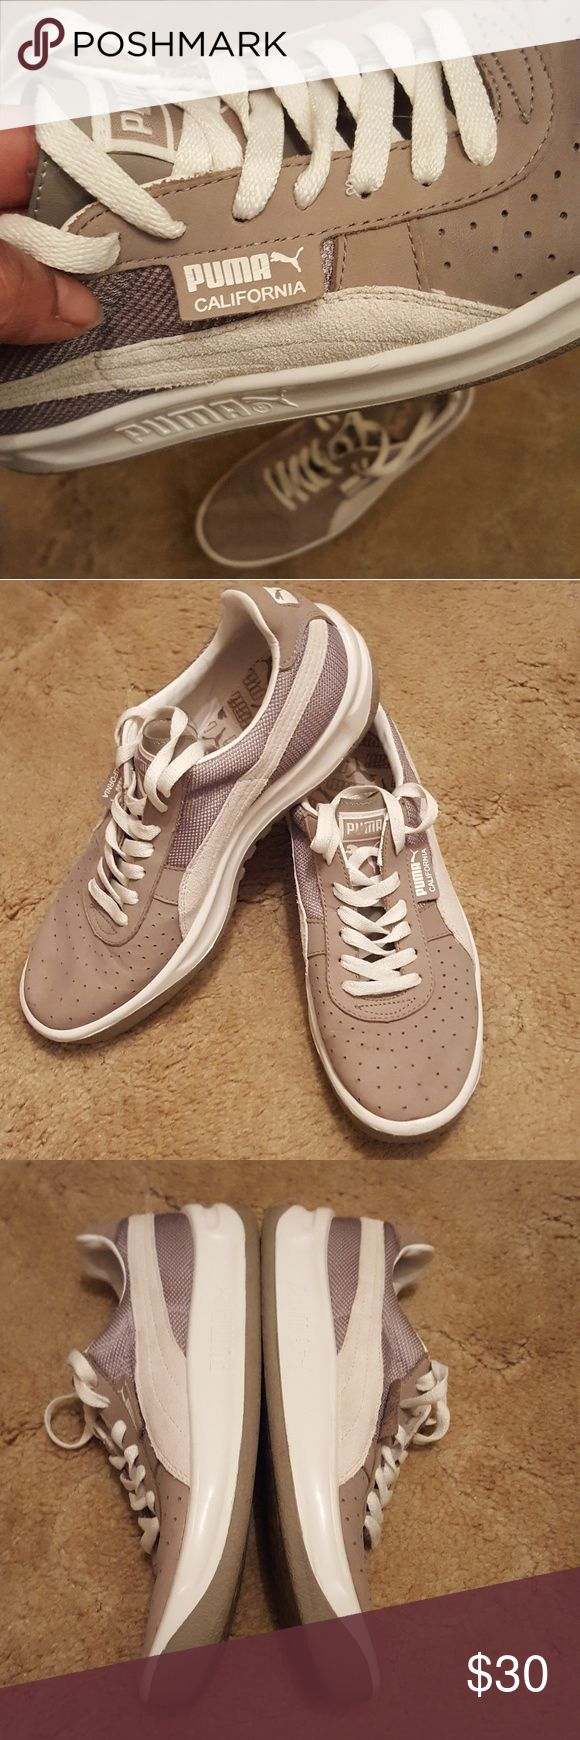 Puma California Taupe Pumas like new, there's a scuff on the toe, you can't really see it though Puma Shoes Sneakers